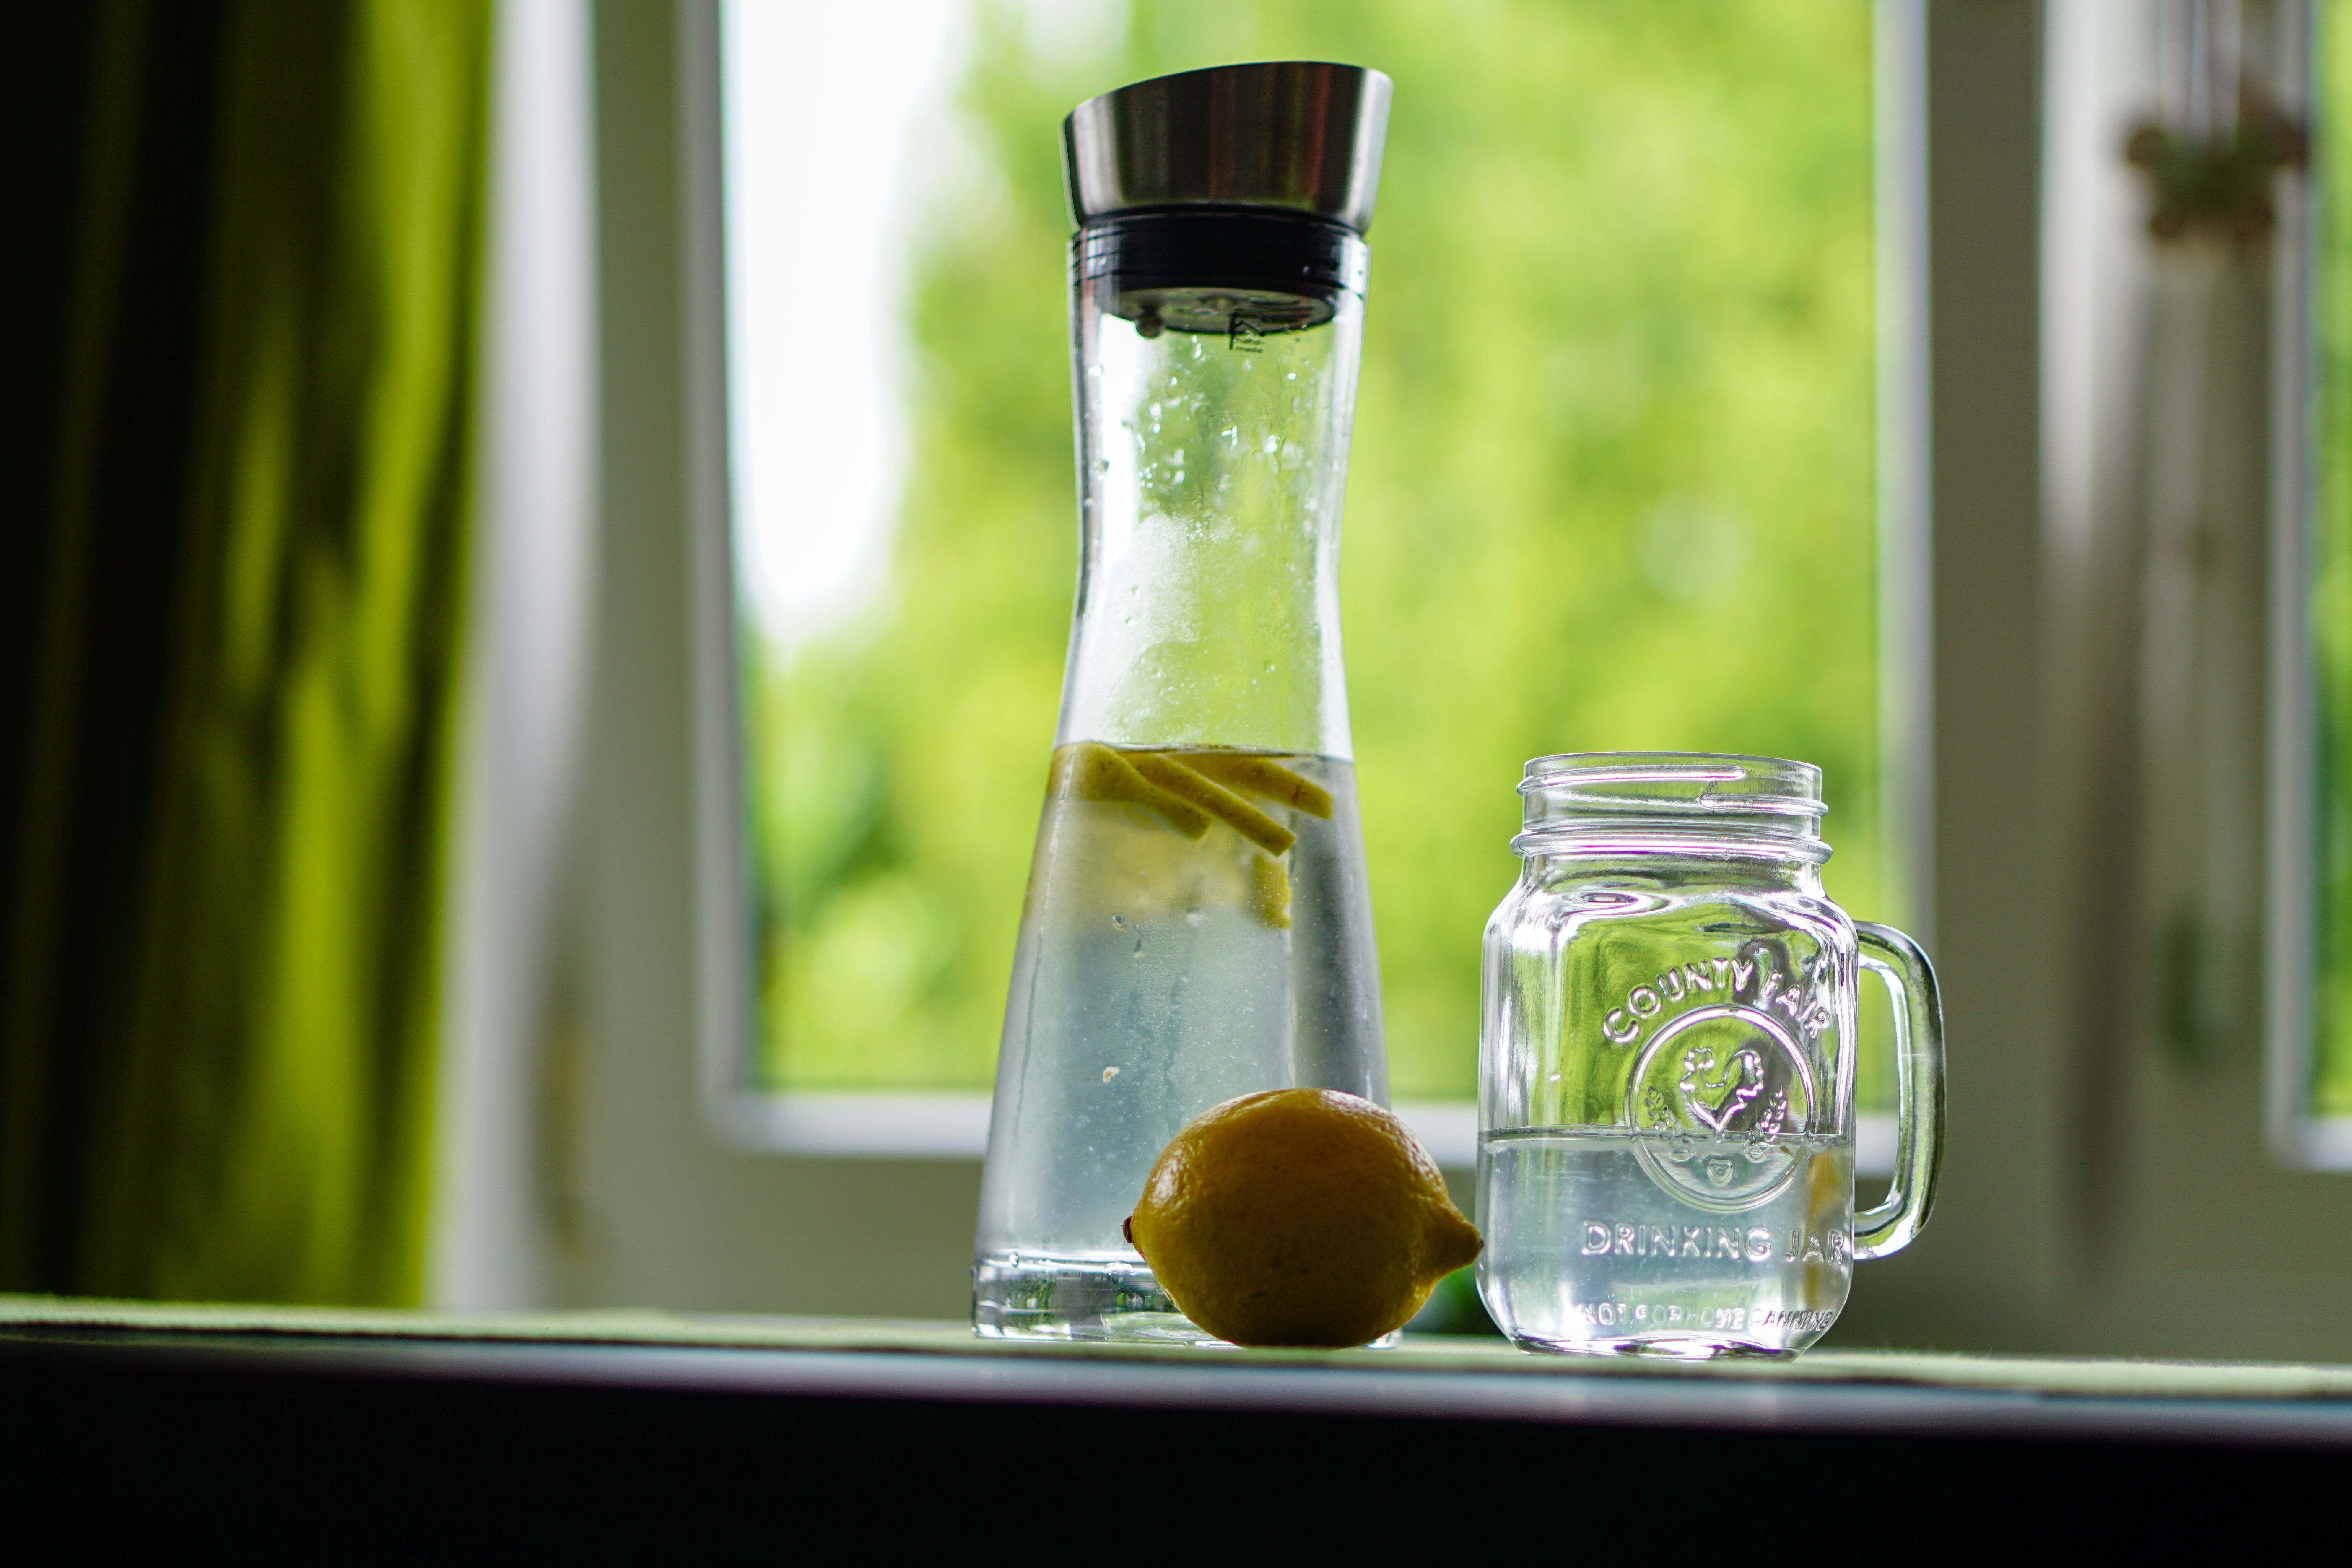 lemon-water-refreshment-fruit-juice-162783.jpg